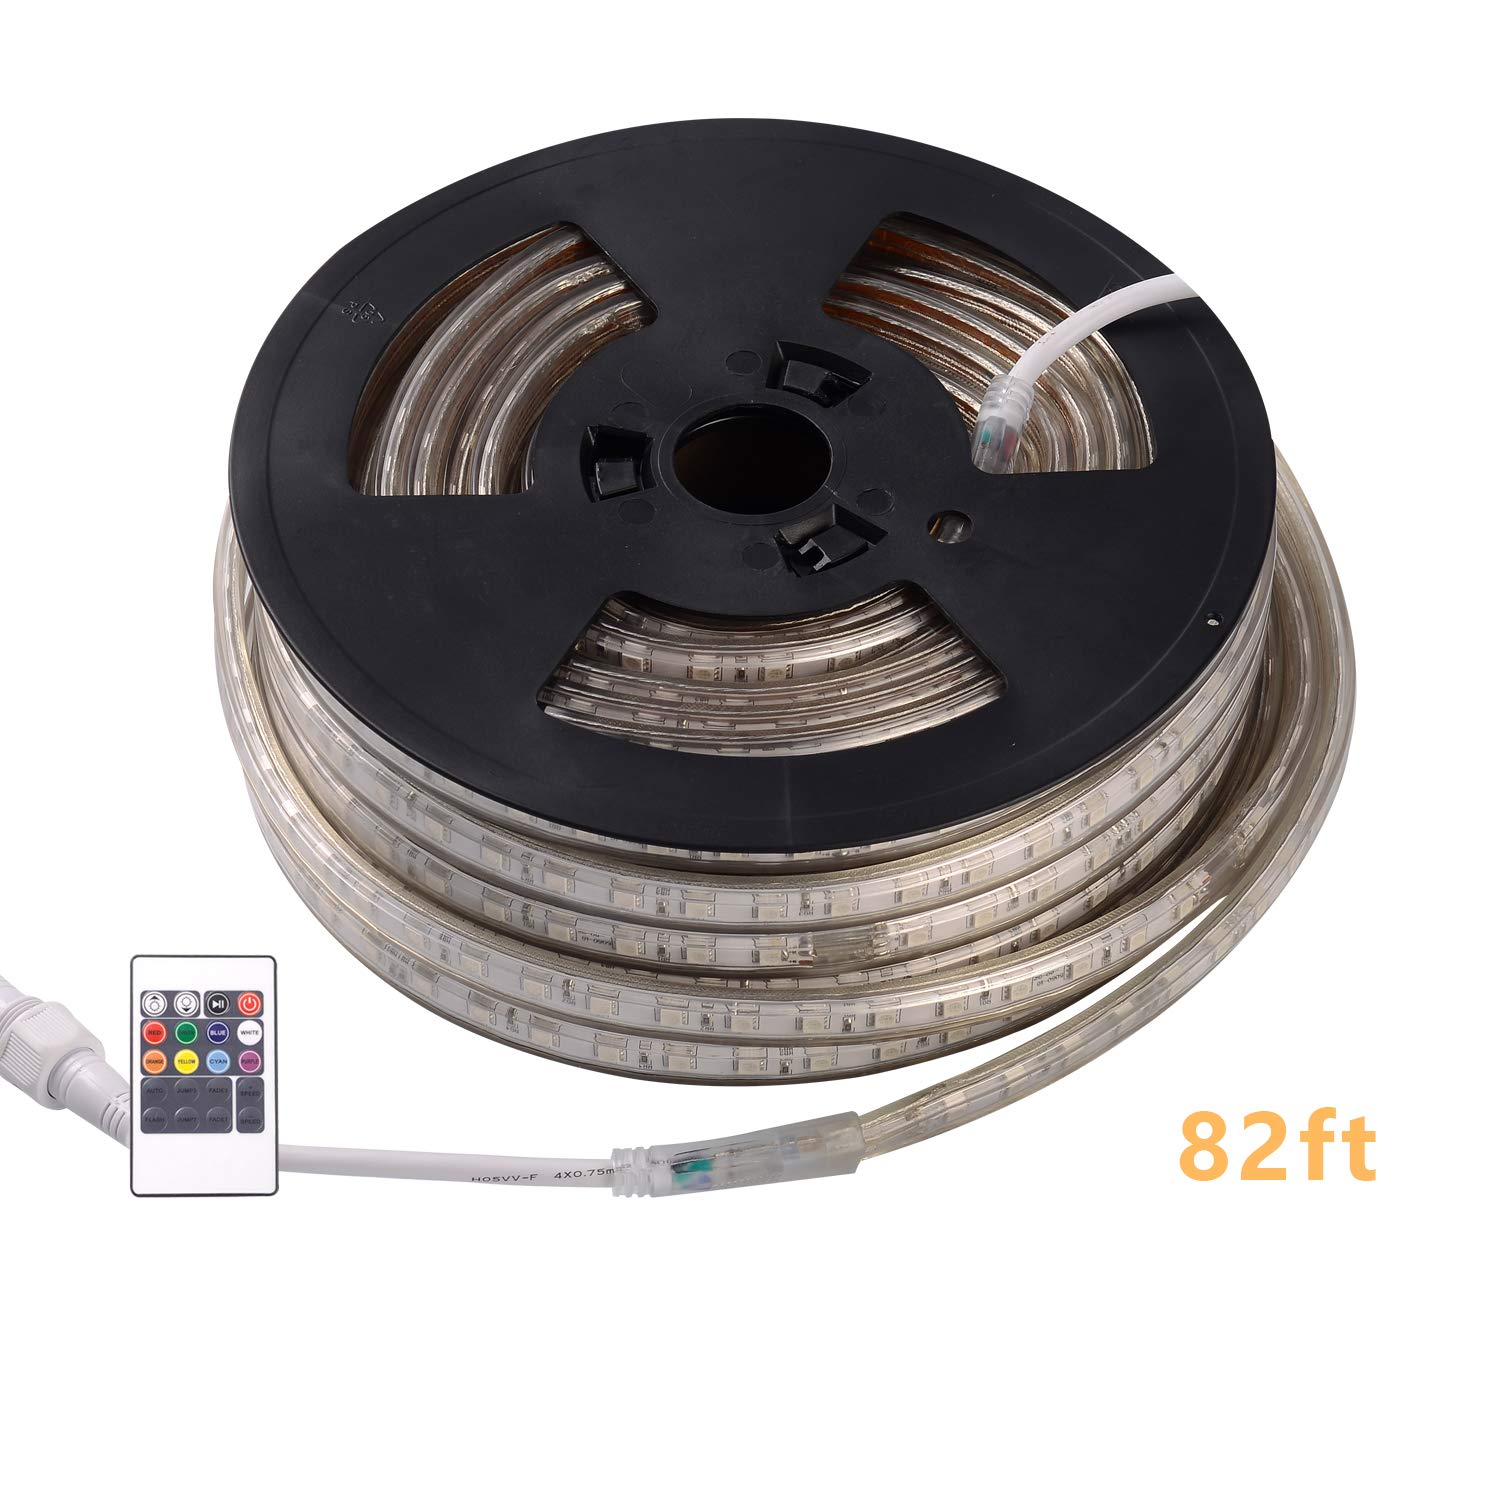 Shine Decor 110V RGB Color Changable LED Strip Lights | Super Bright Plug & Play Light Strip for Indoor Outdoor Lighting | Safe Flexible Glowing Lights for Party Decorations & Ambient Spaces | 82ft